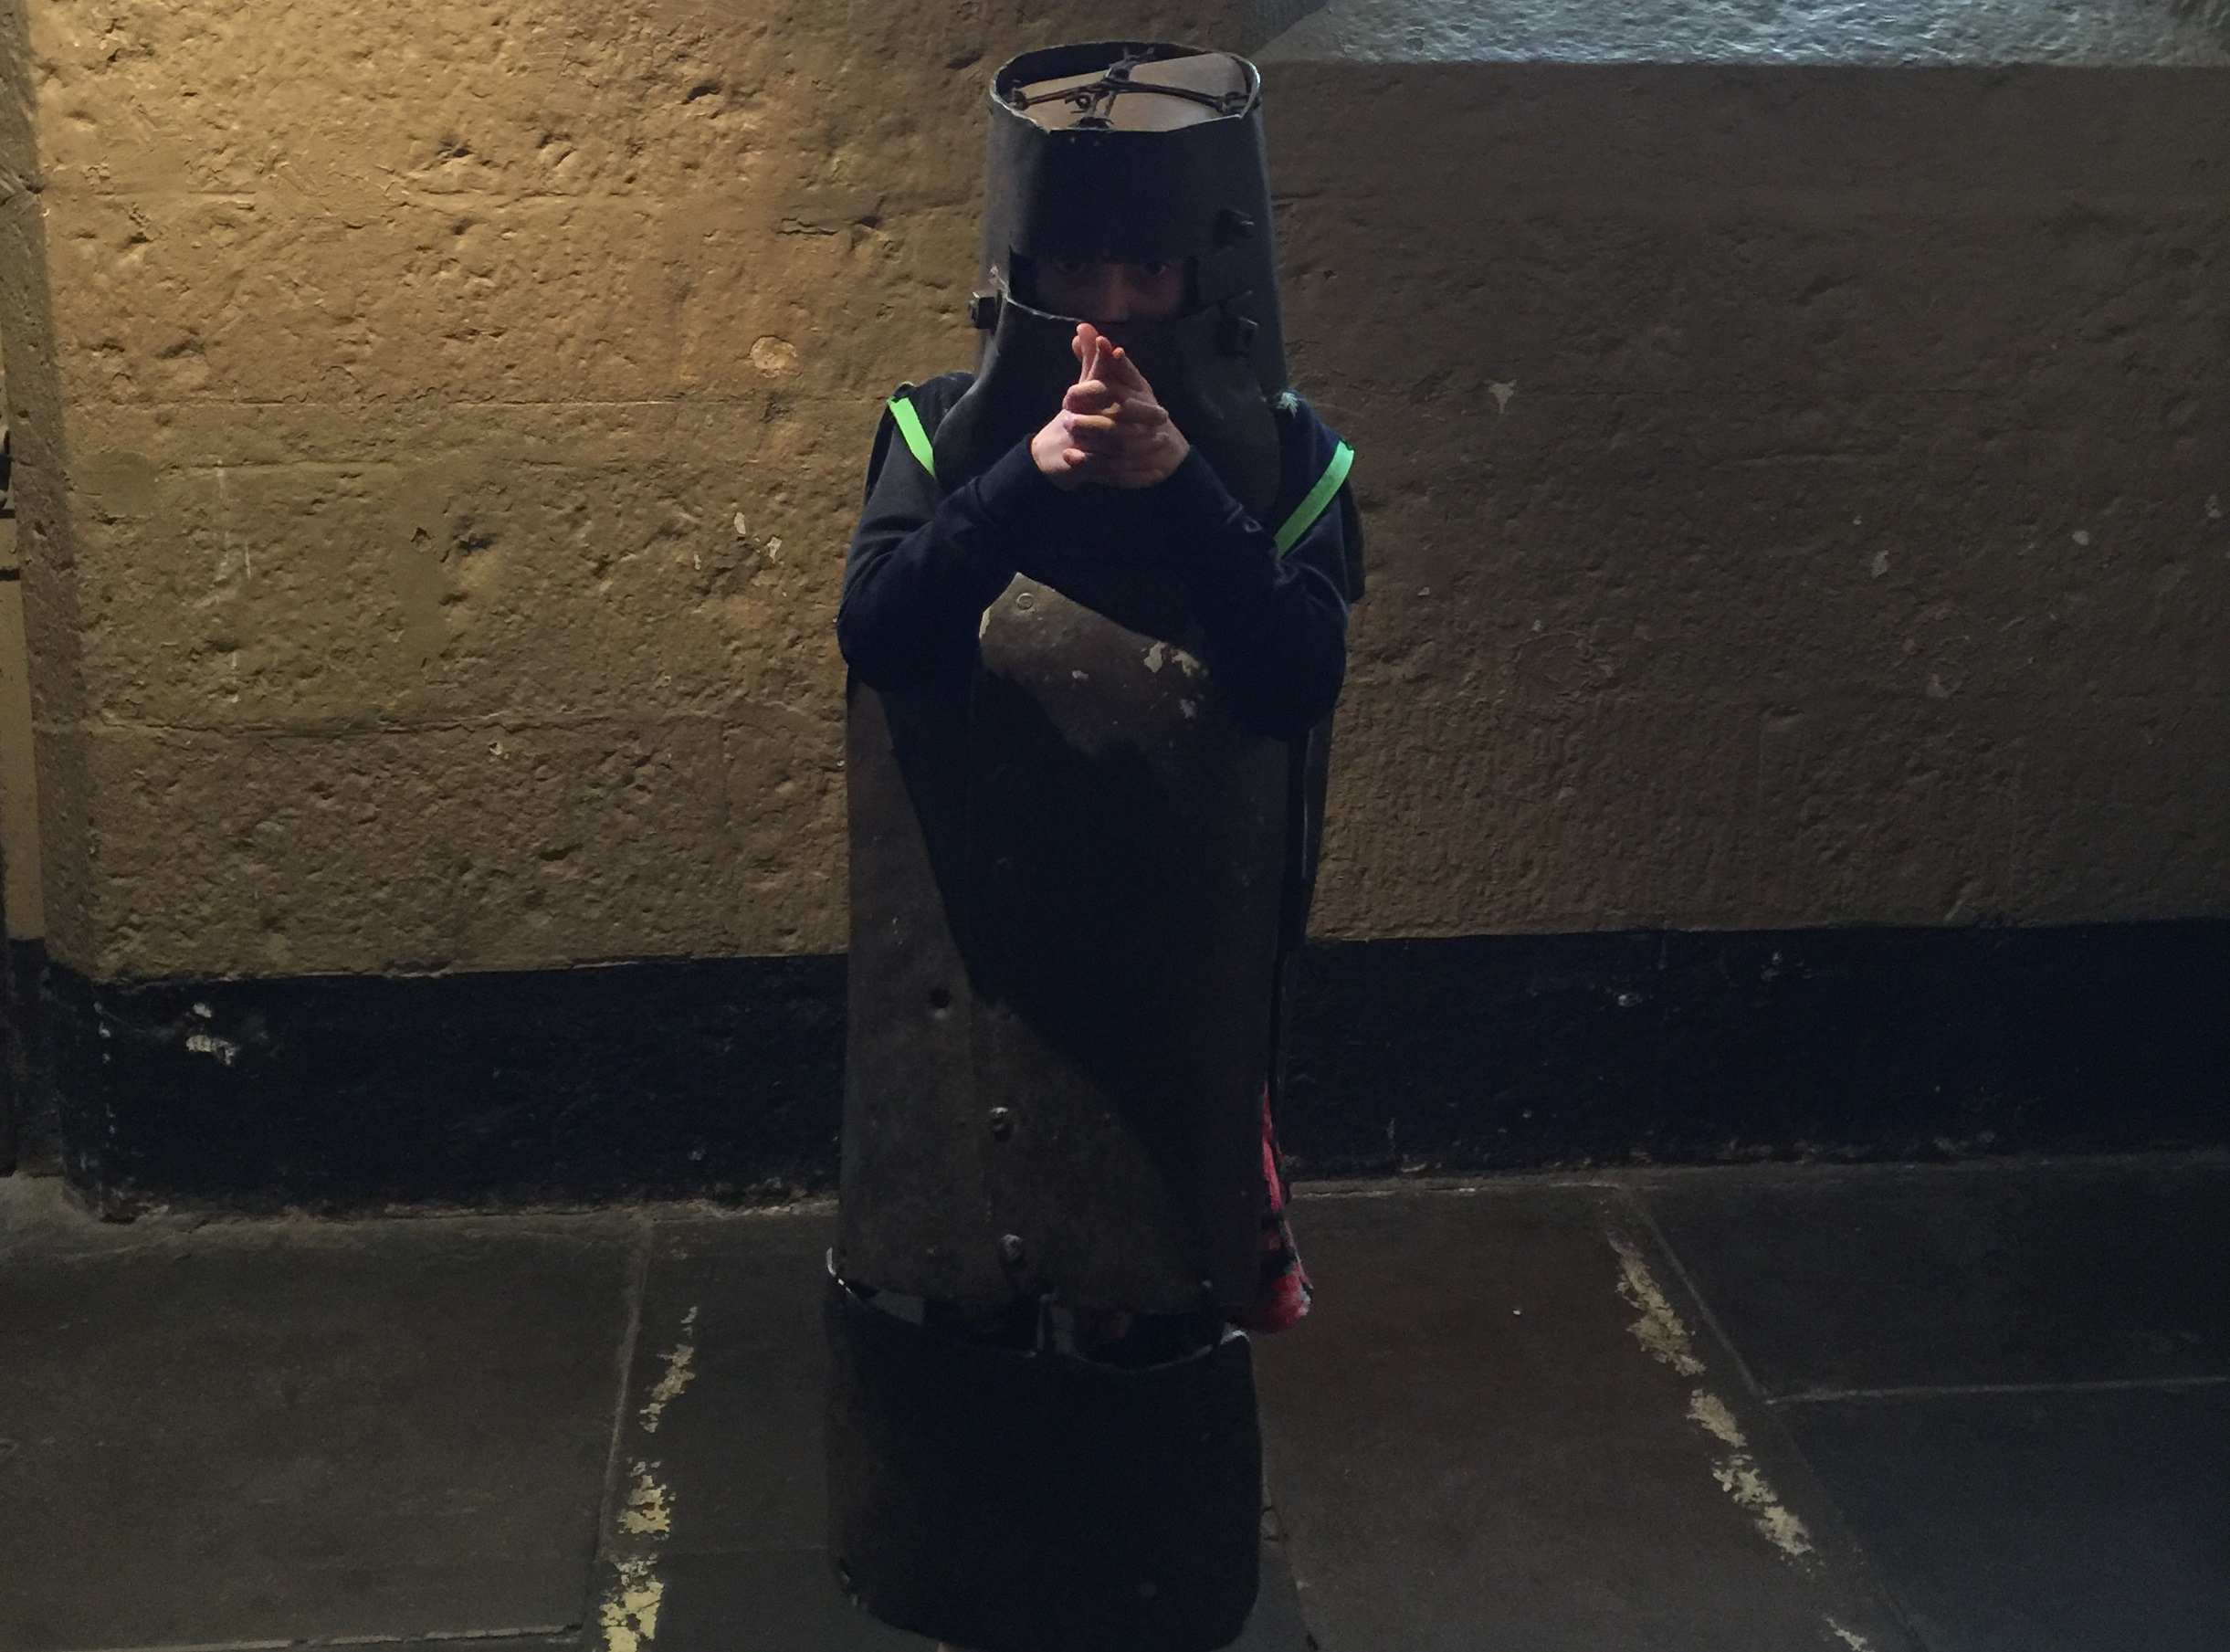 The kids can try on some reproduction Ned Kelly armour for photos!